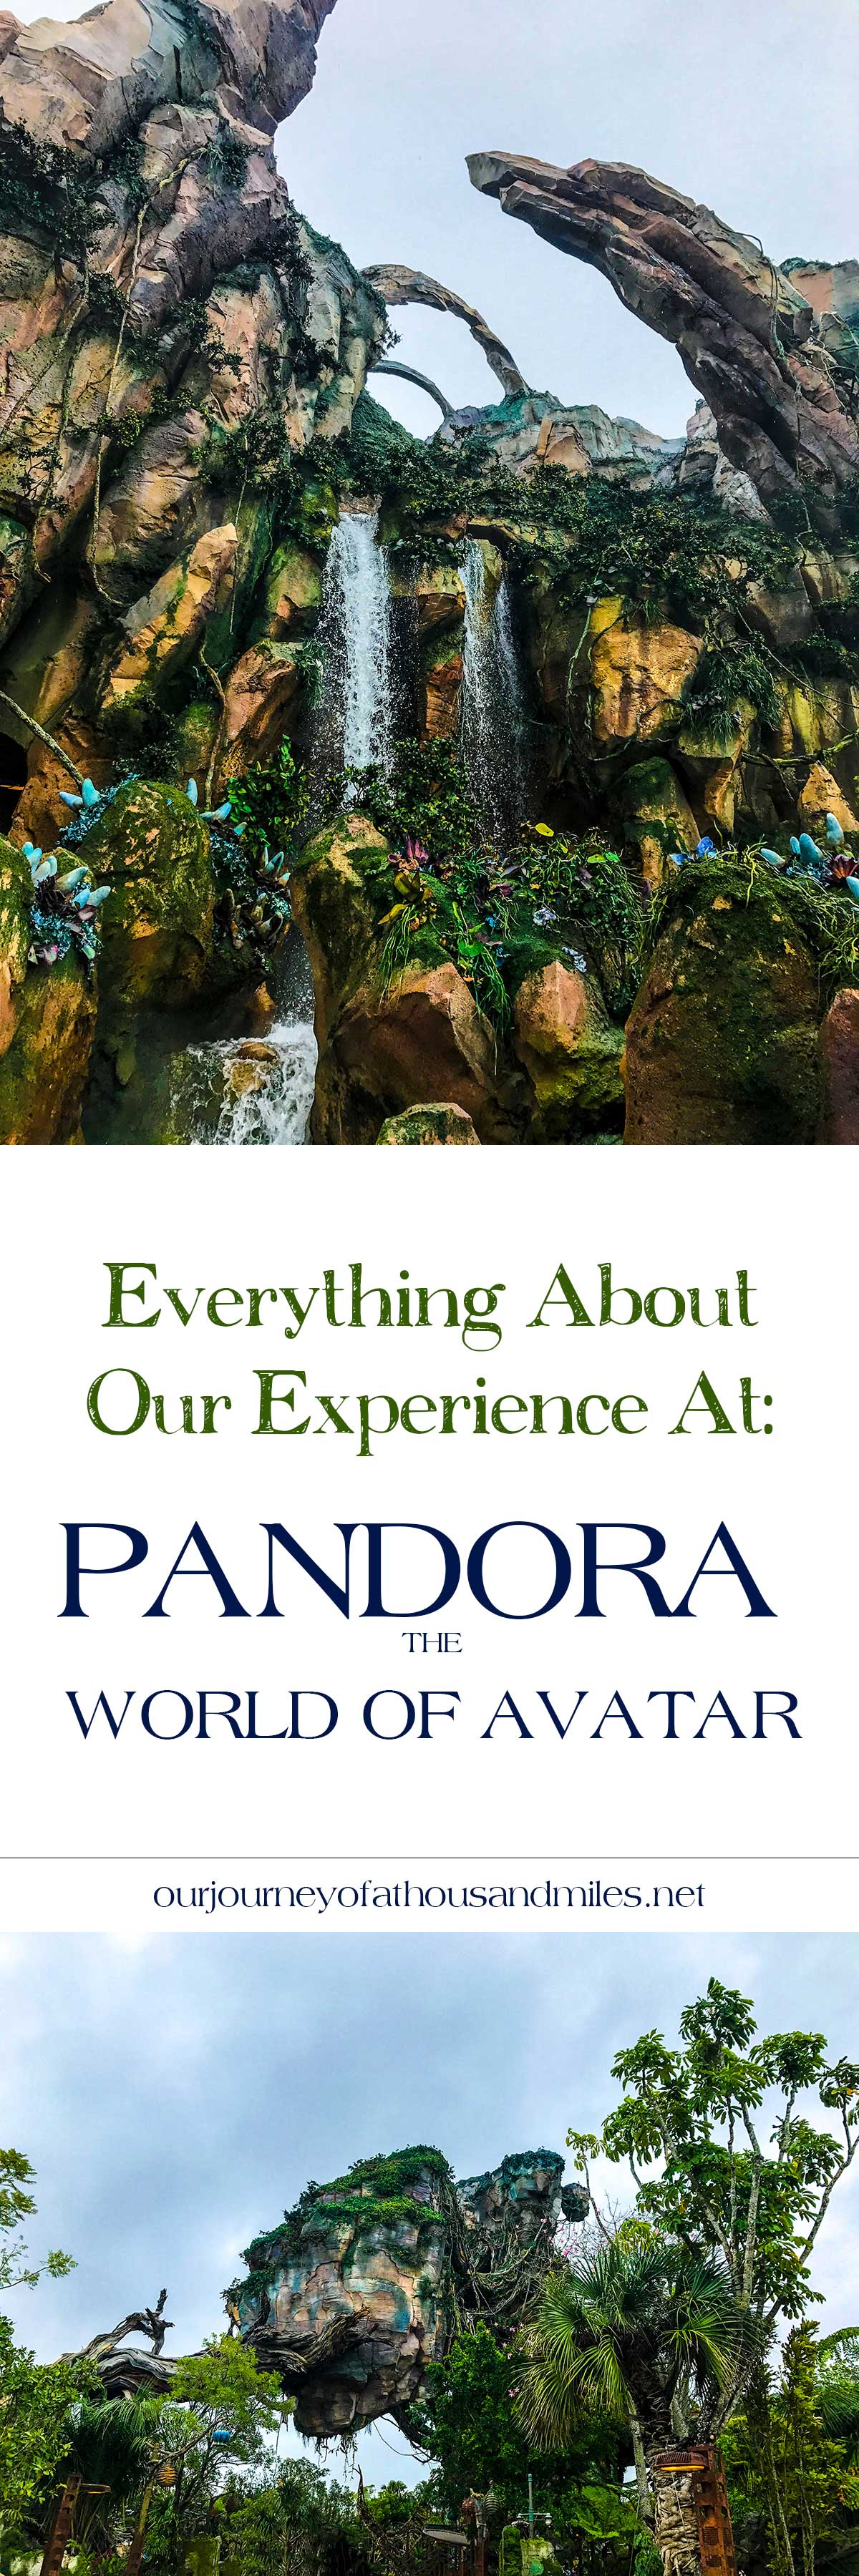 Everything-About-Our-Experience-At-Pandora-The-World-Of-Avatar